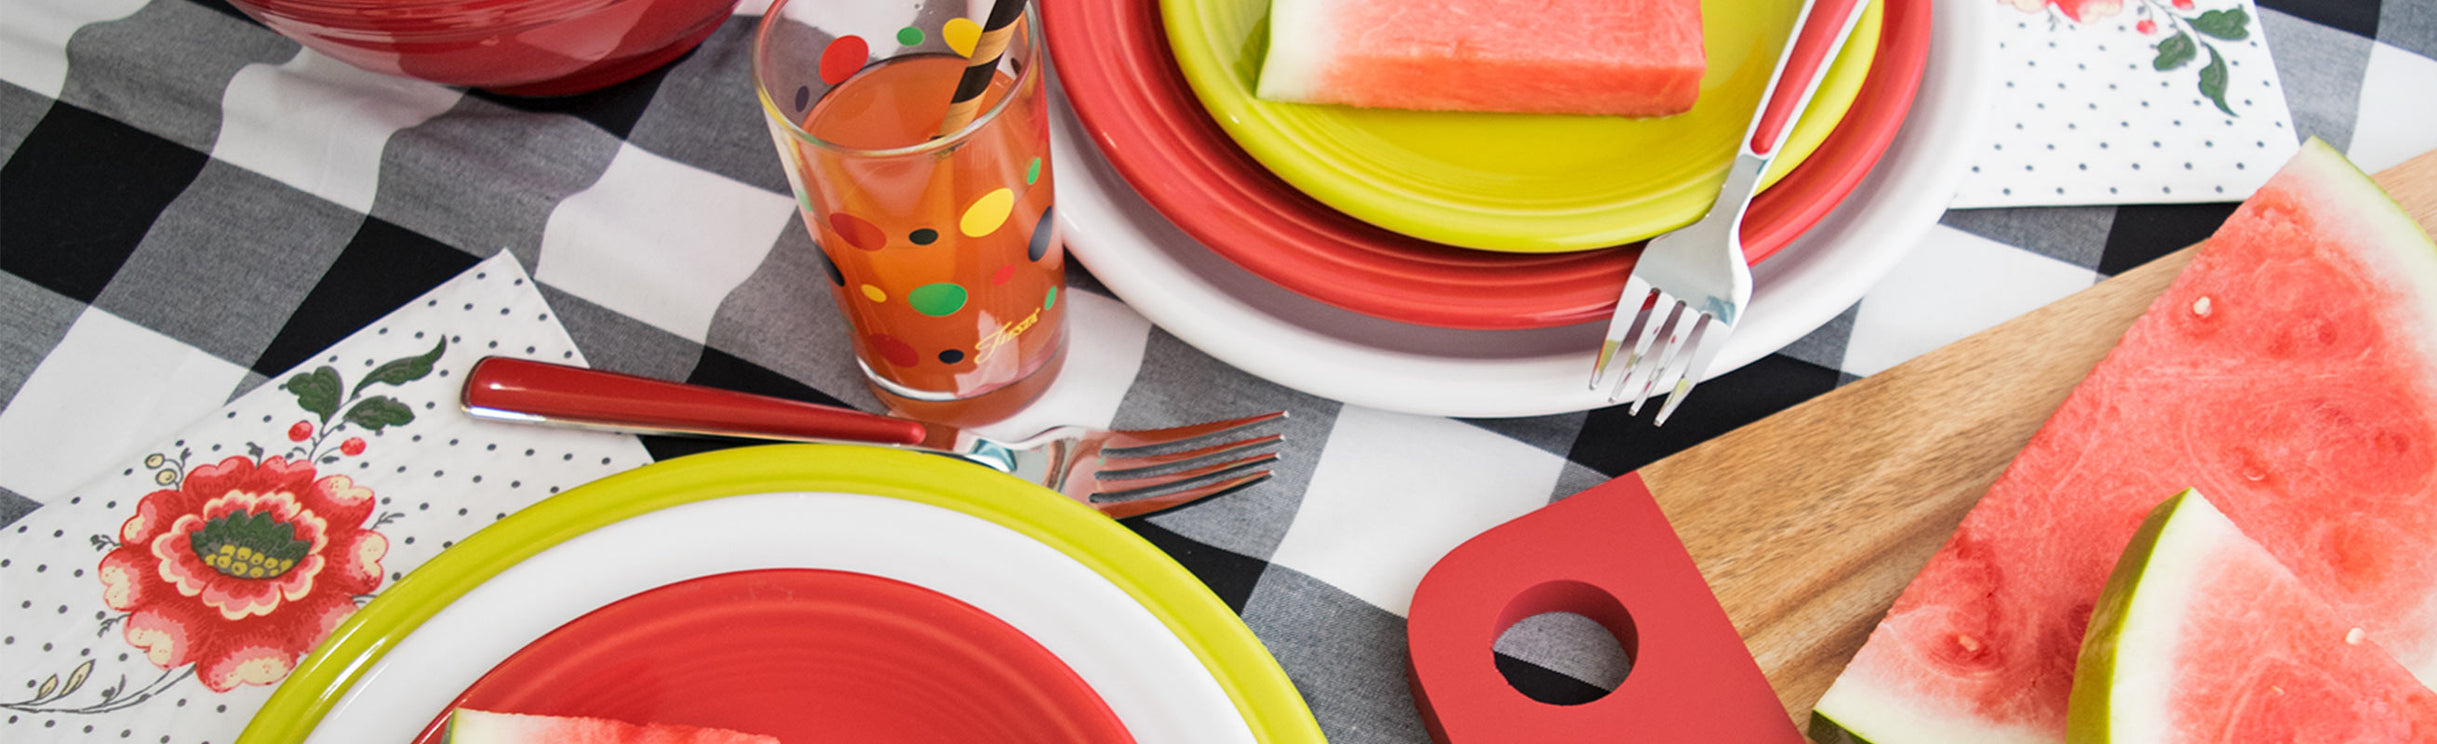 Checker place setting with multi color plates